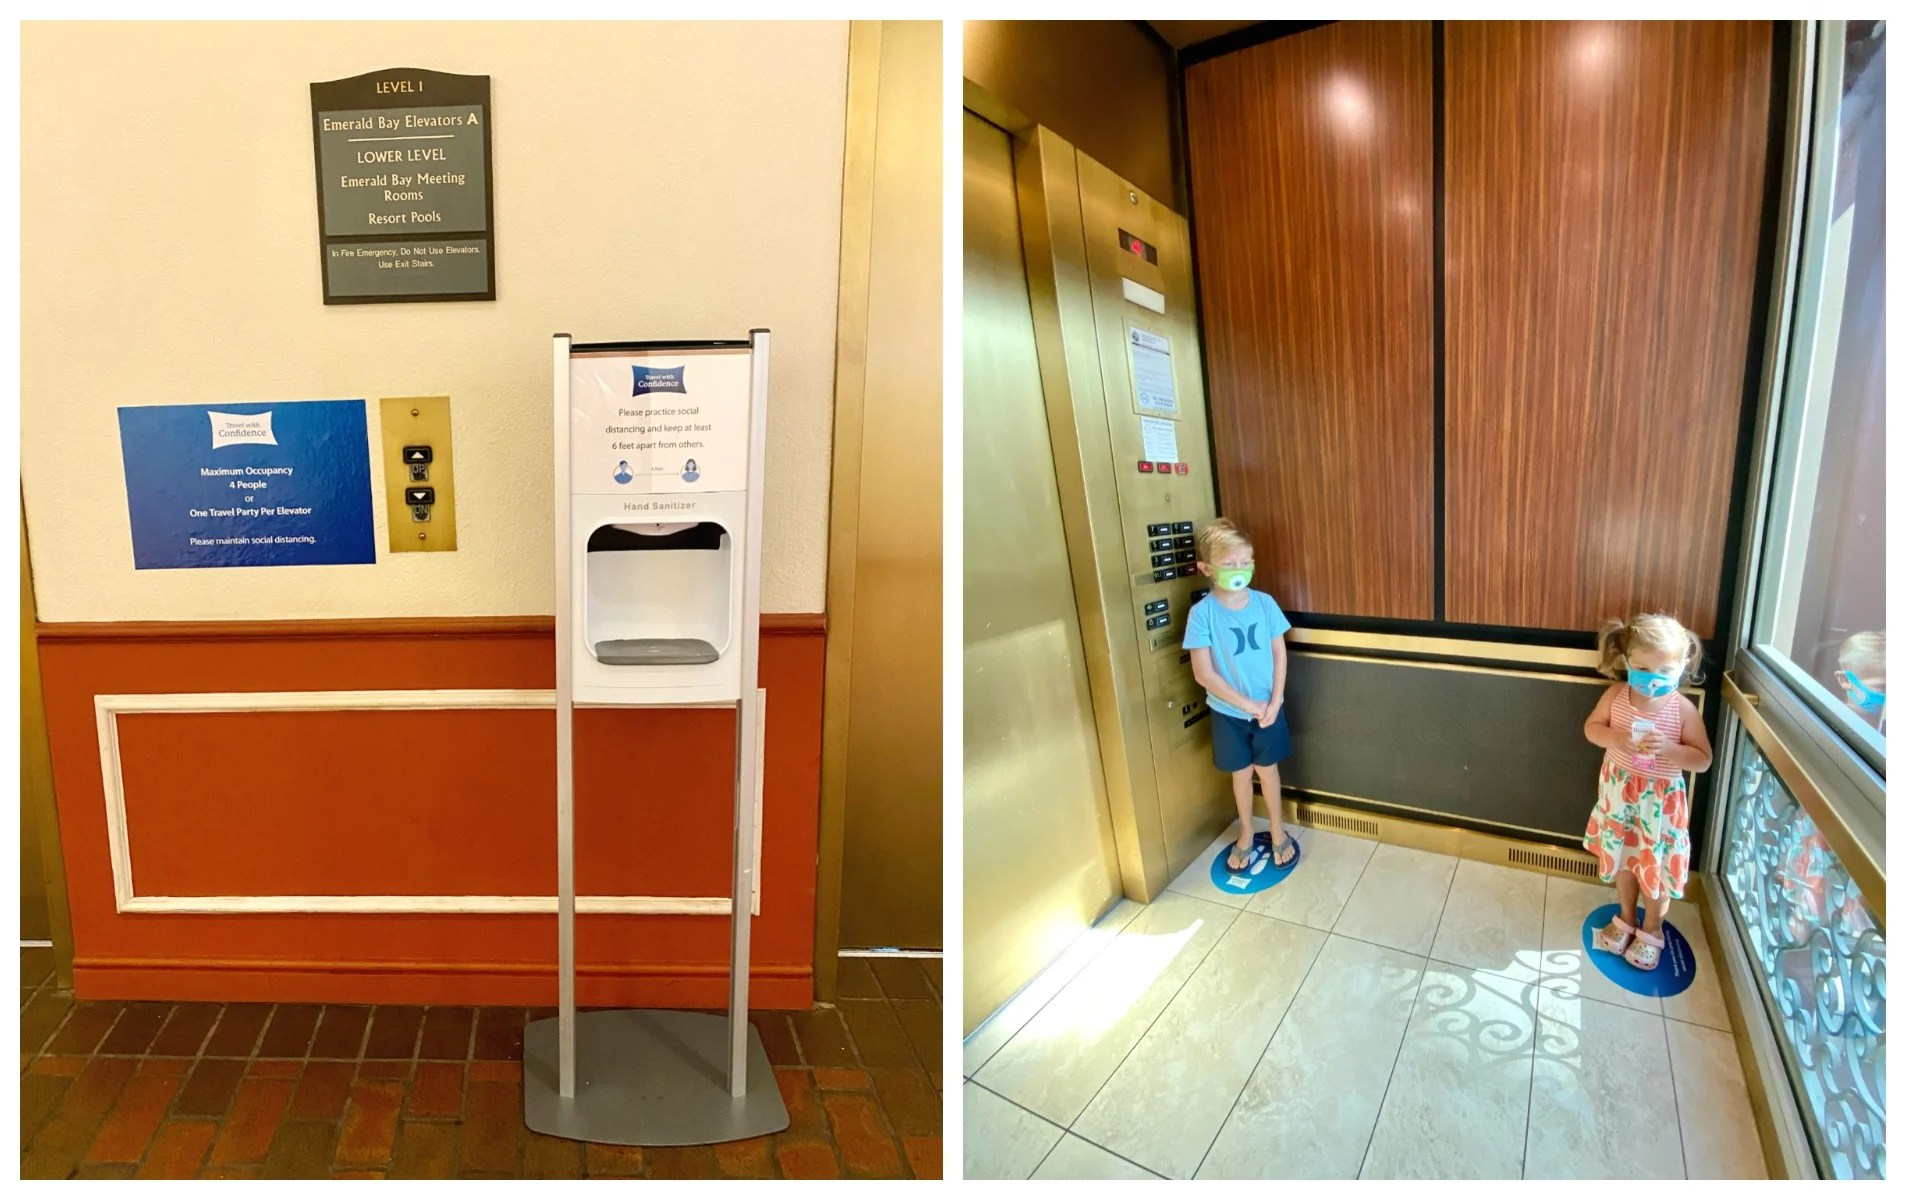 Two photo split of hand sanitizer and kids standing on circles in an elevator.